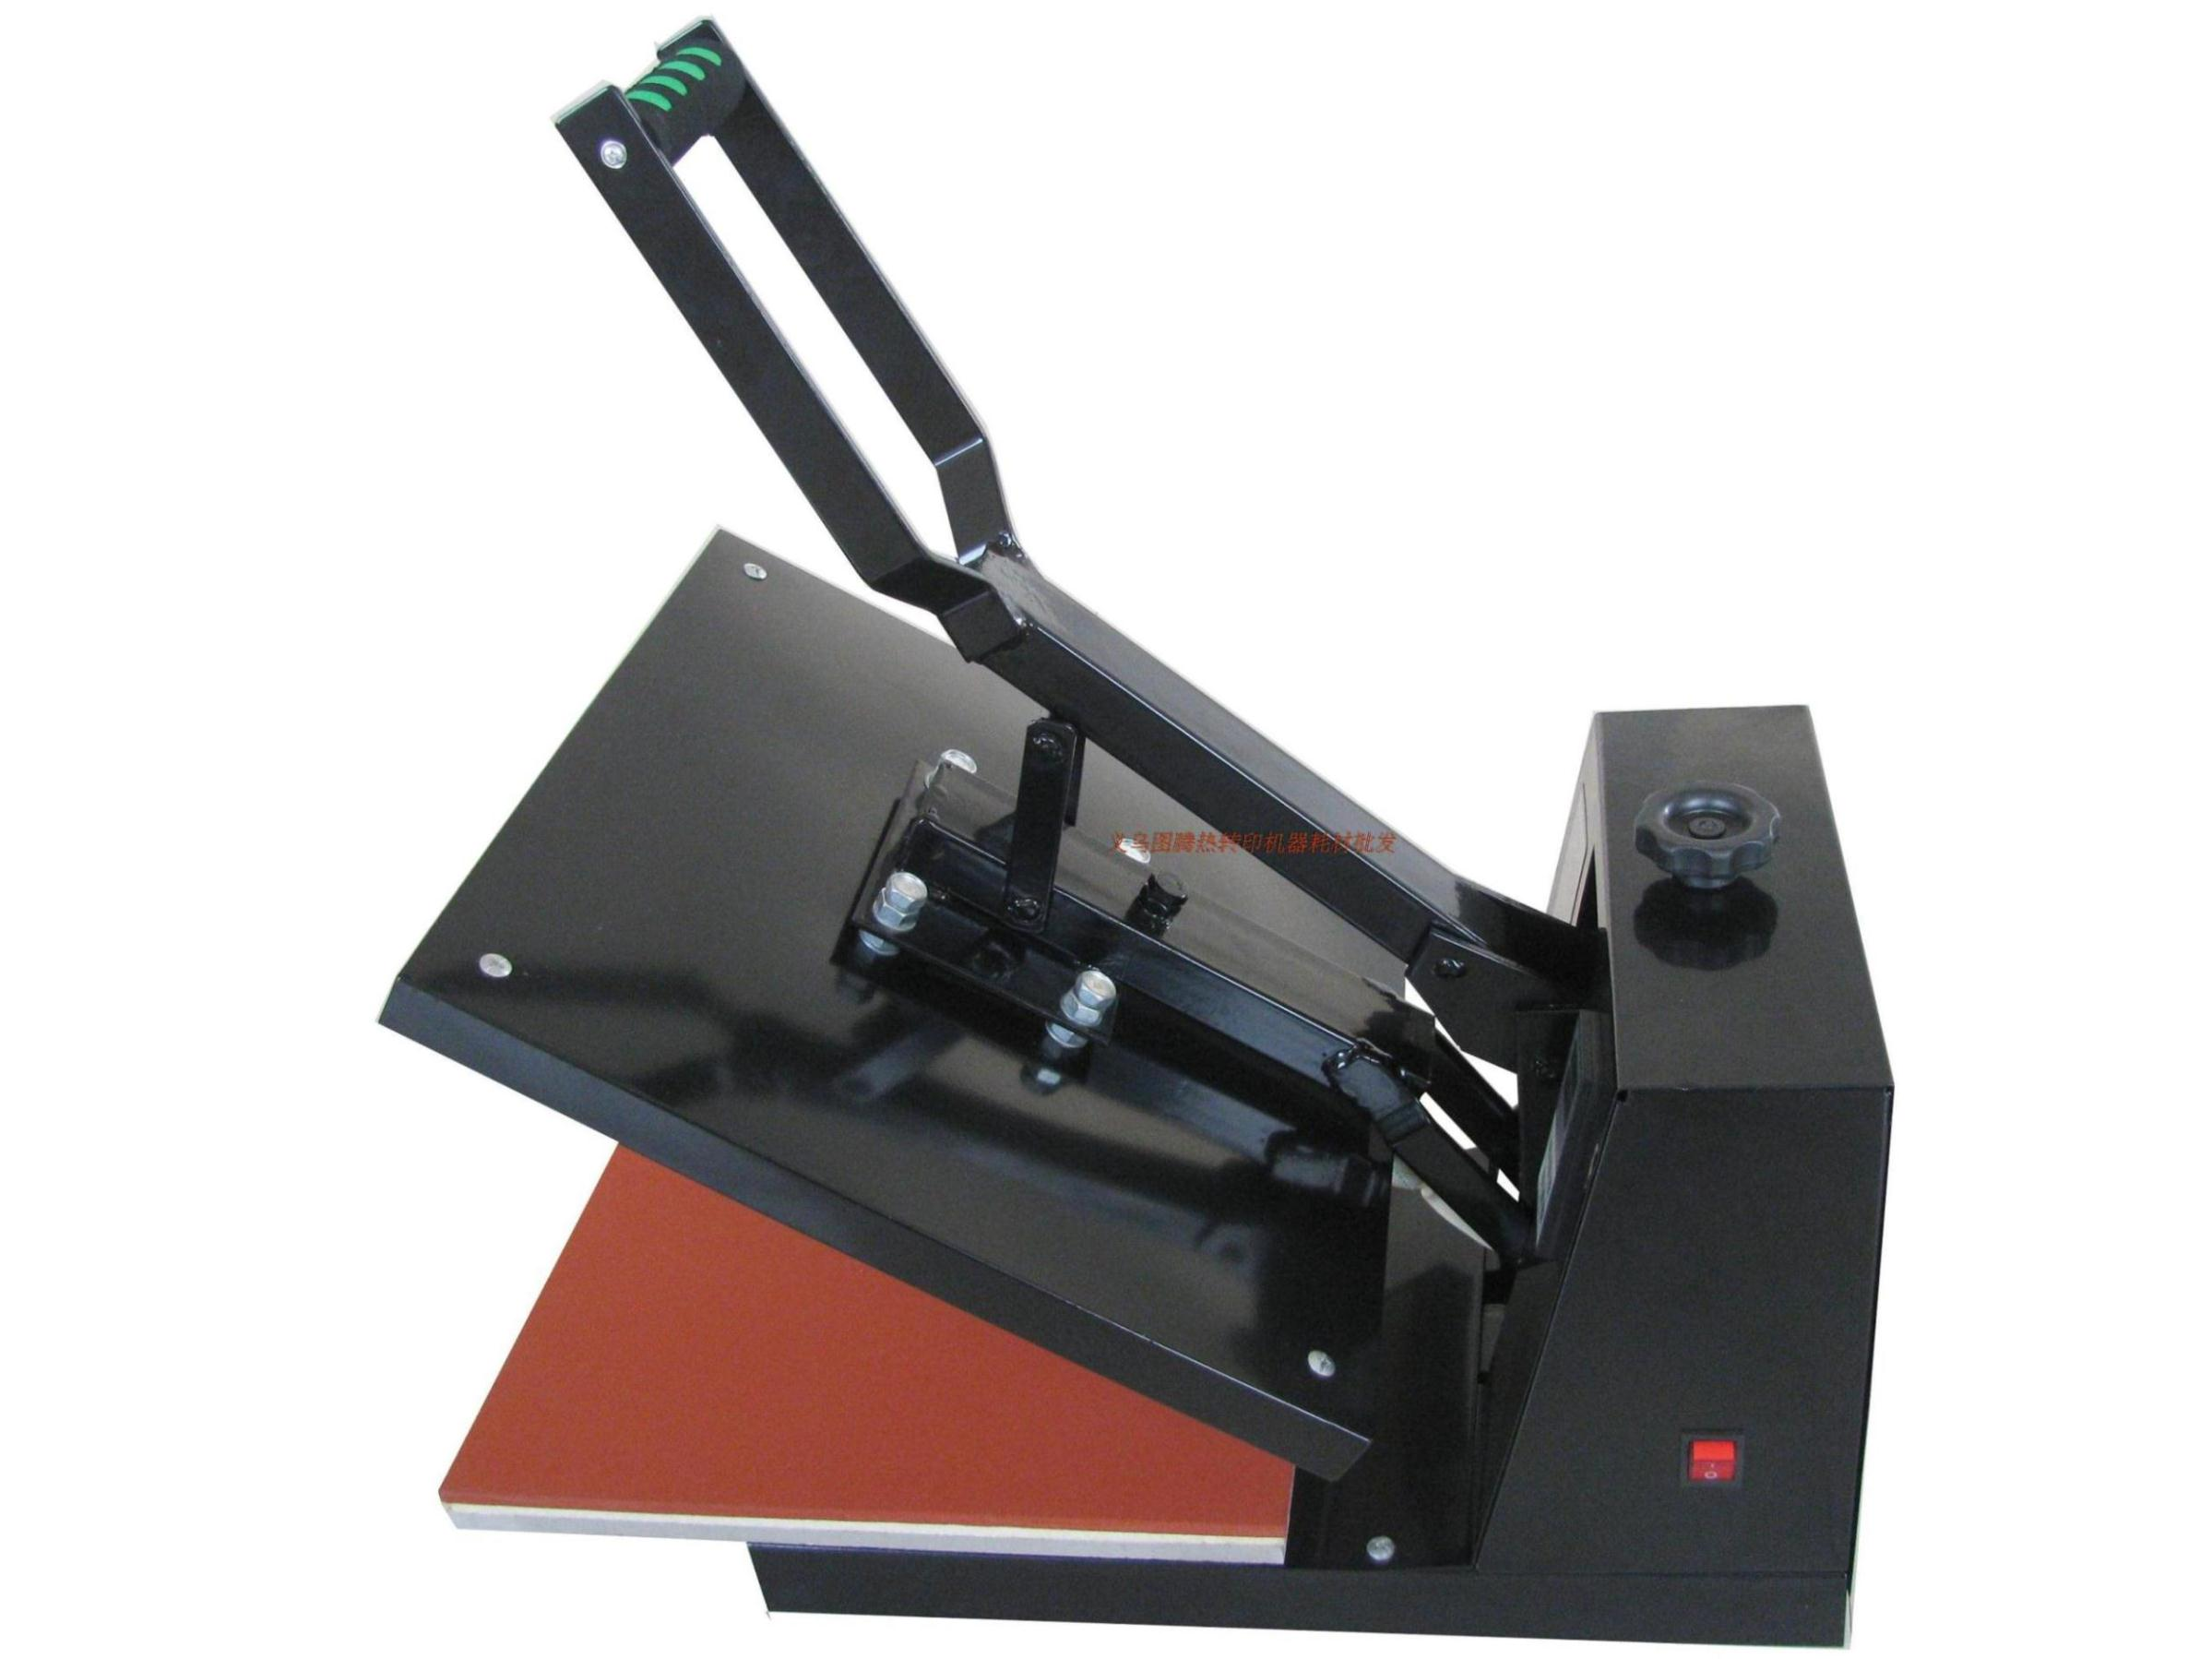 38 38cm digital tshirt printing machine t shirt printing for Machine for printing on t shirts